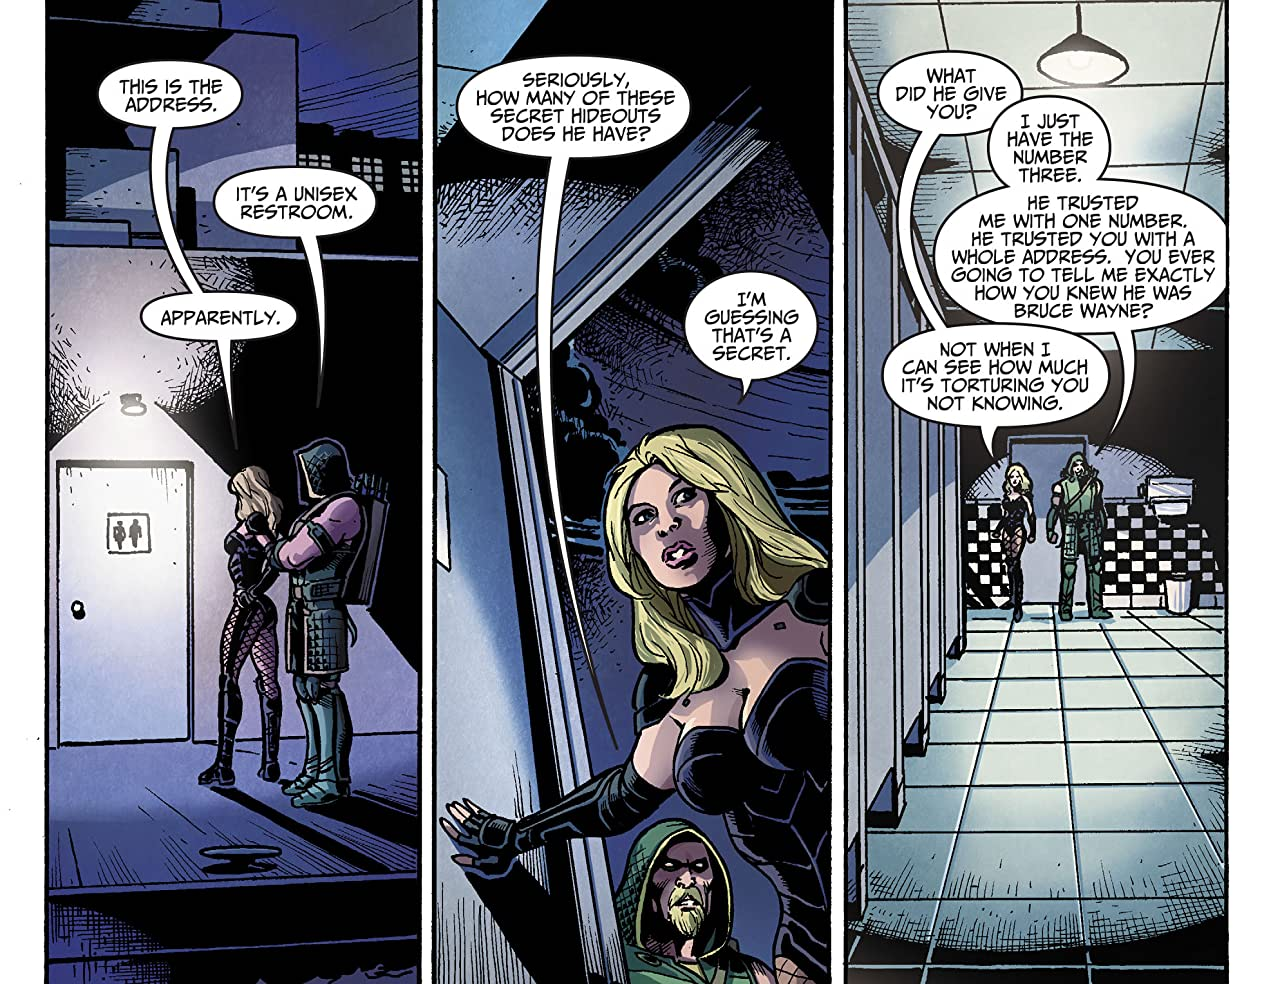 Injustice: Gods Among Us (2013) #31